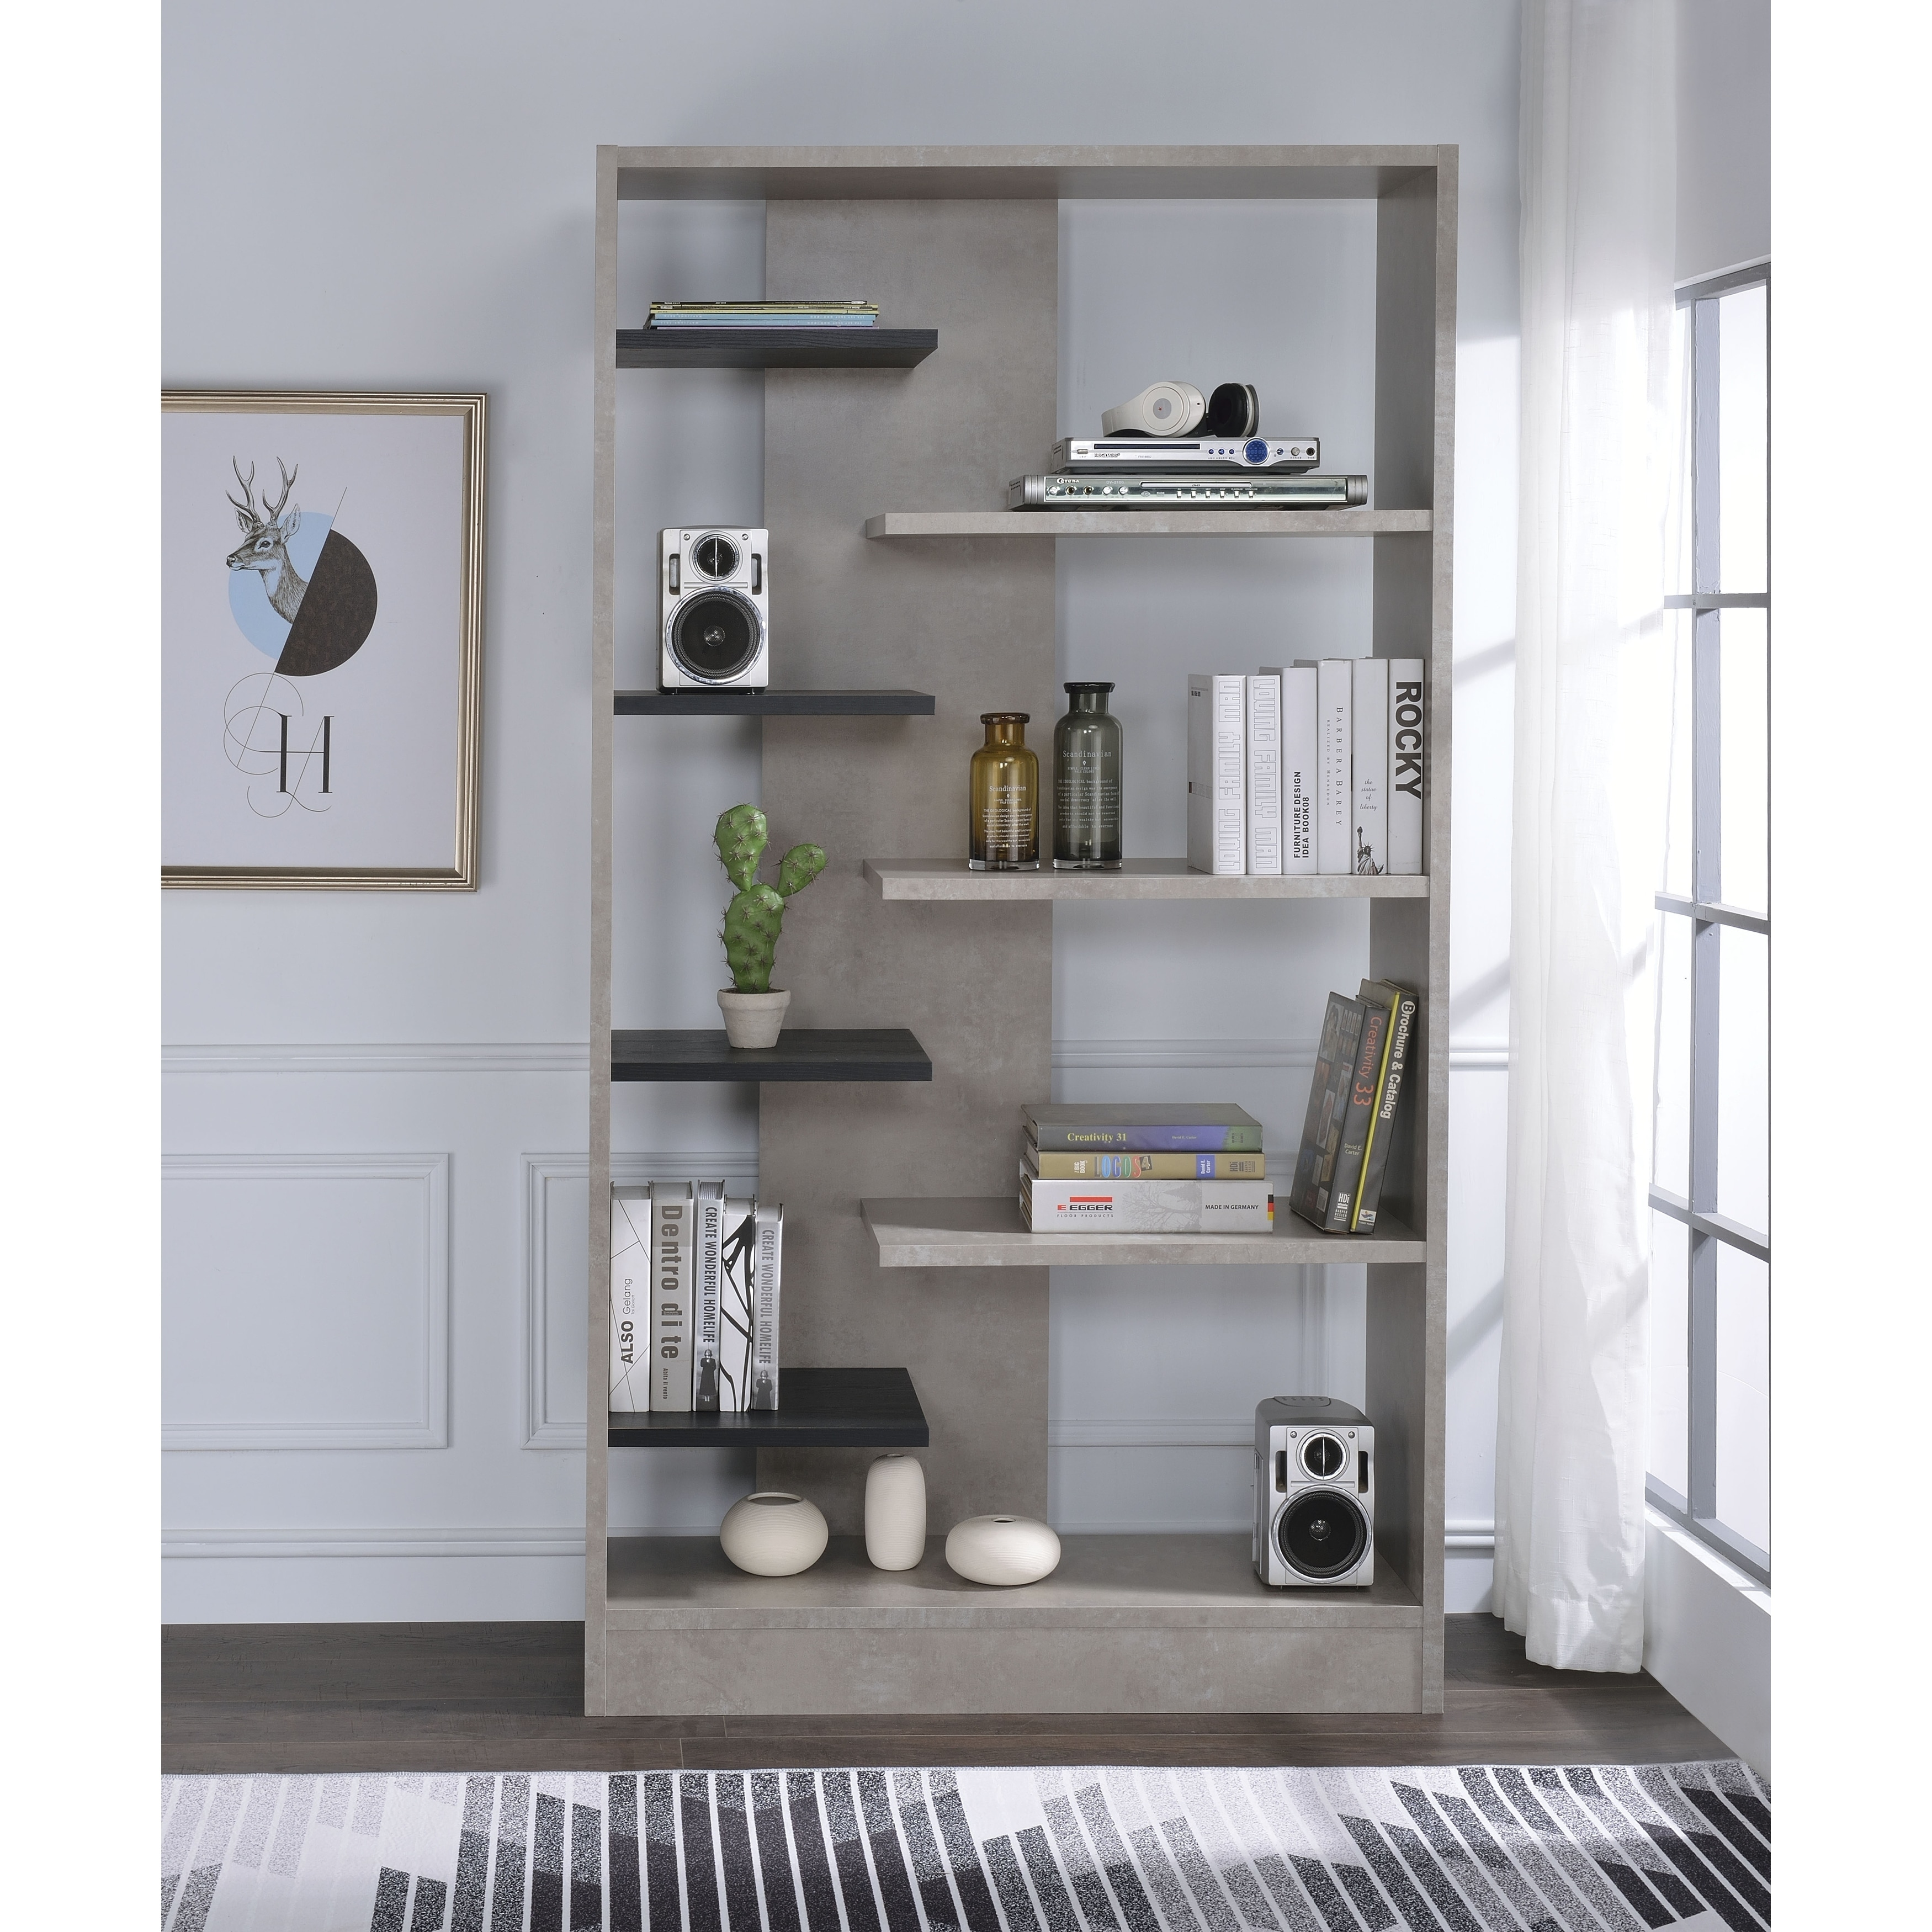 Faux Concrete Wooden Bookcase With Open Shelves, Gray And Black